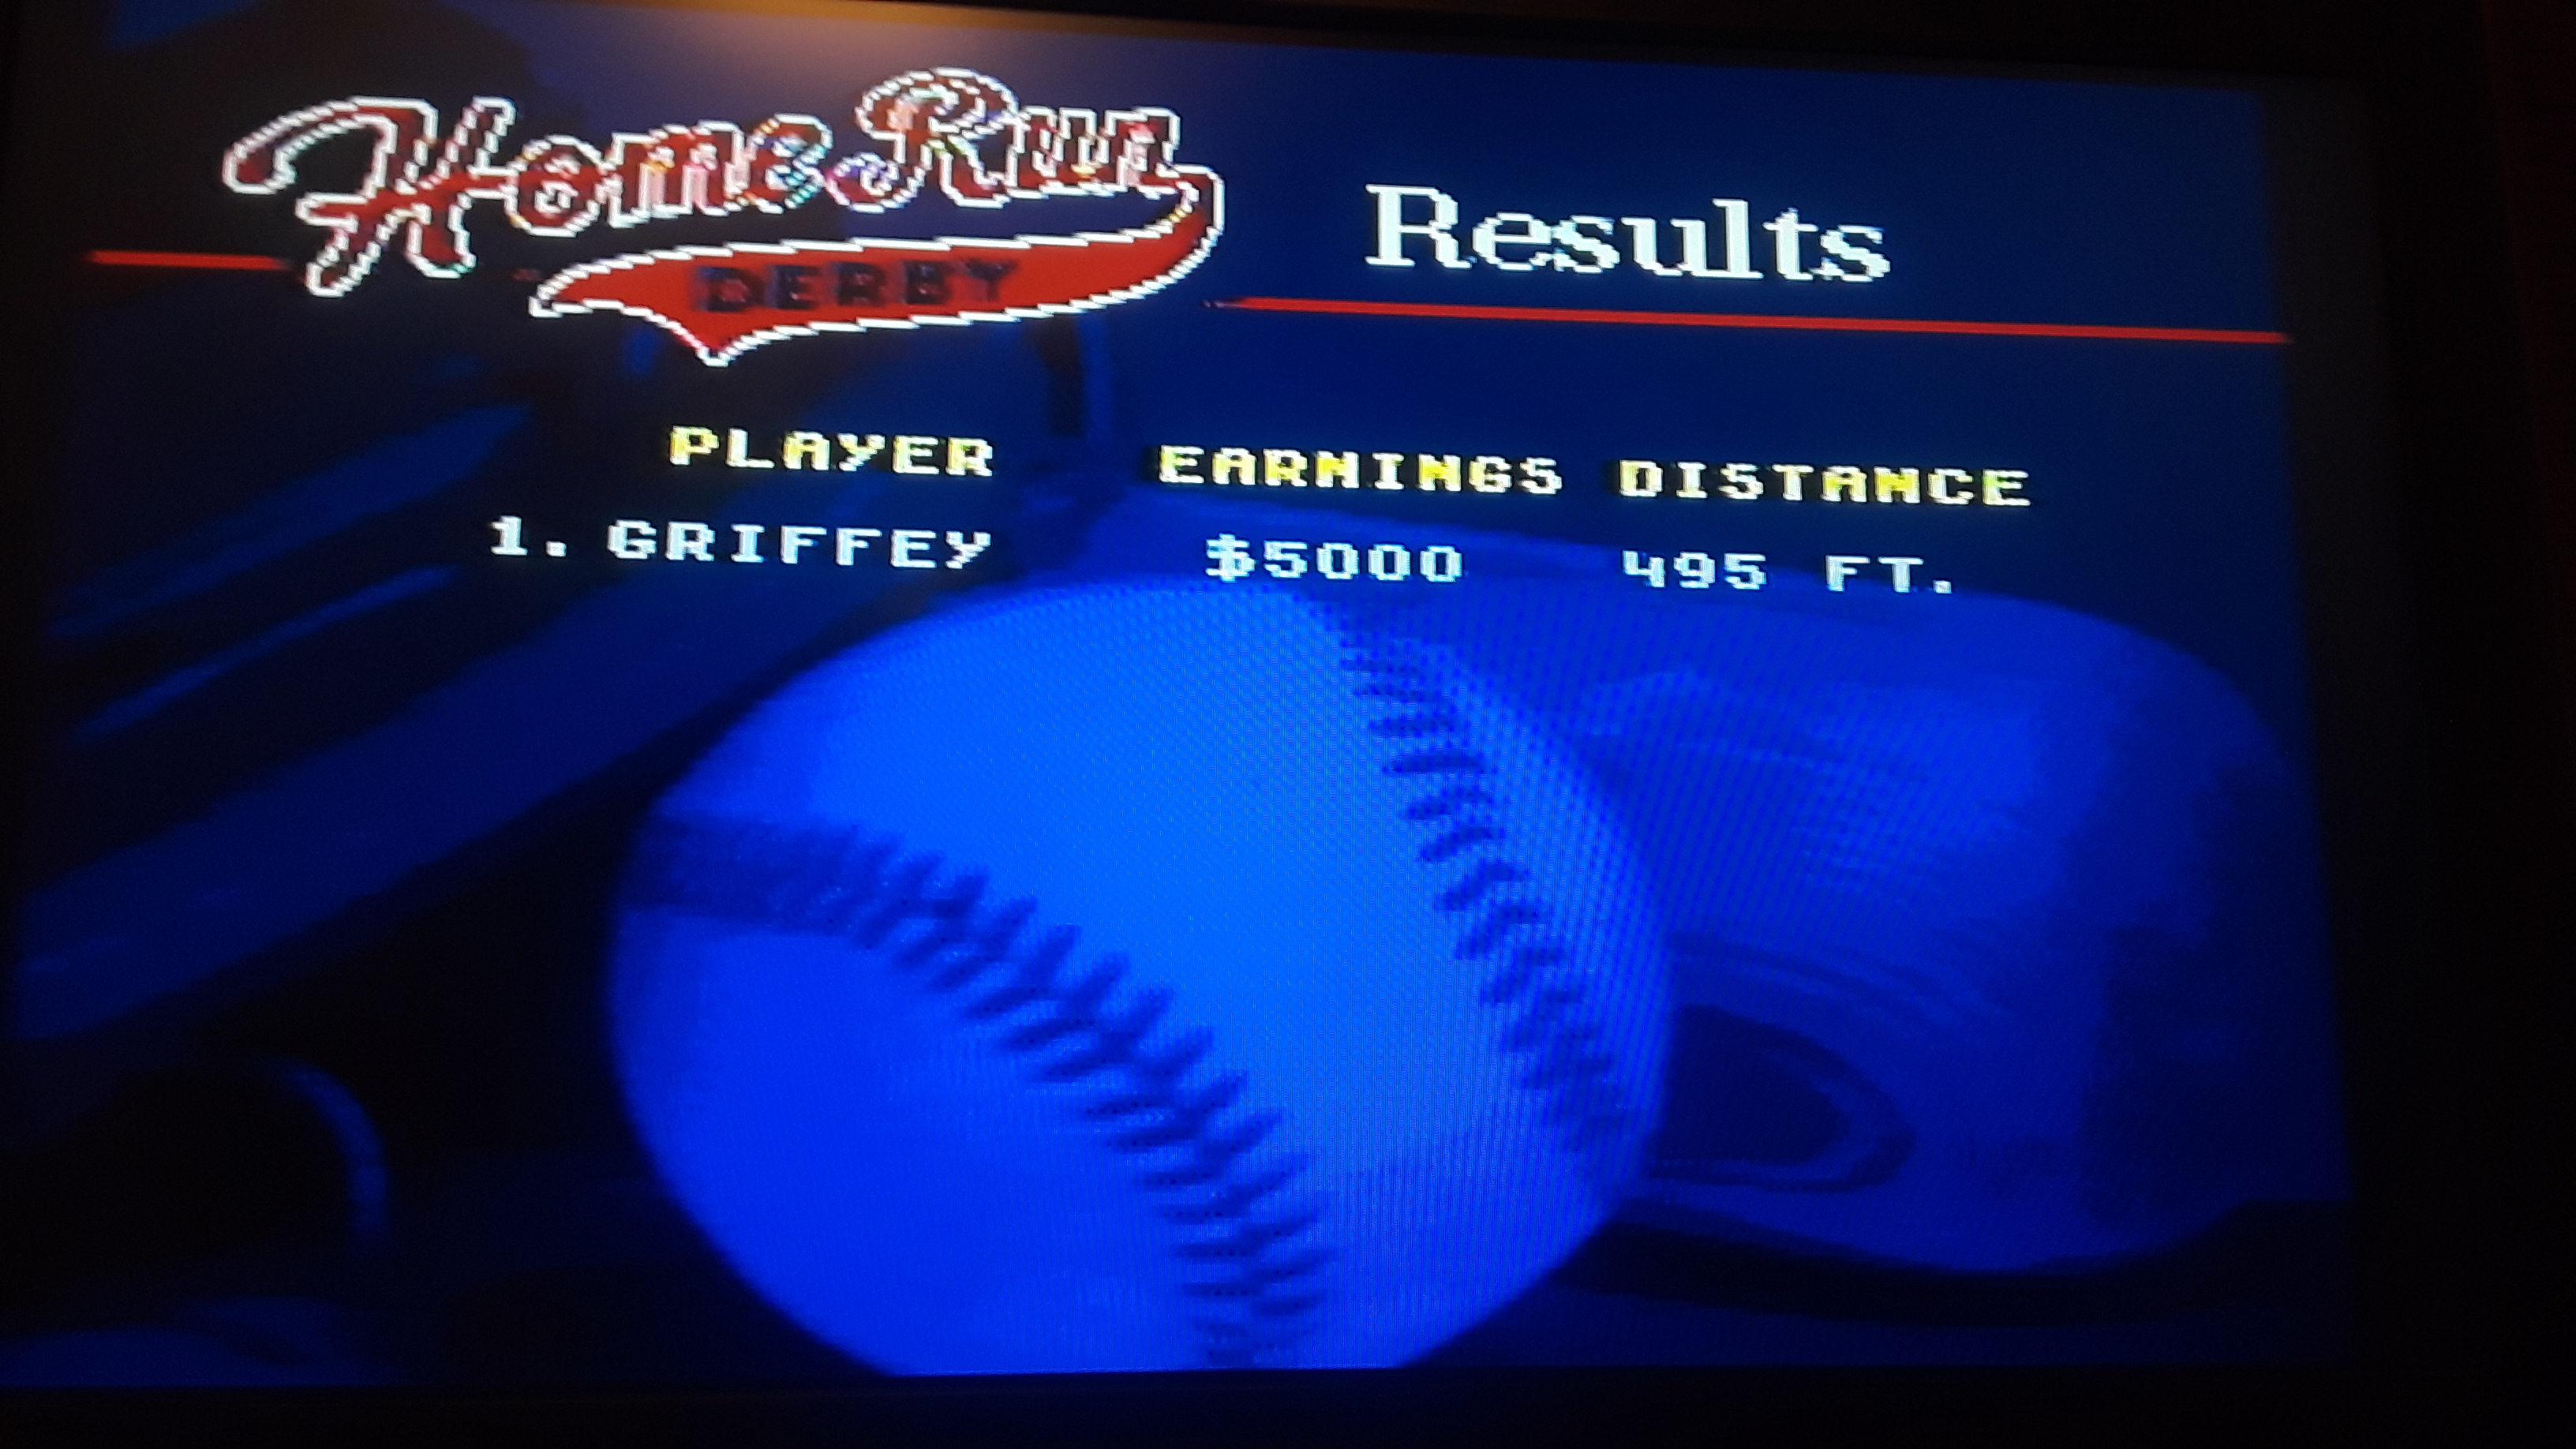 World Series Baseball: Home Run Derby [Longest Home Run in Feet] 495 points